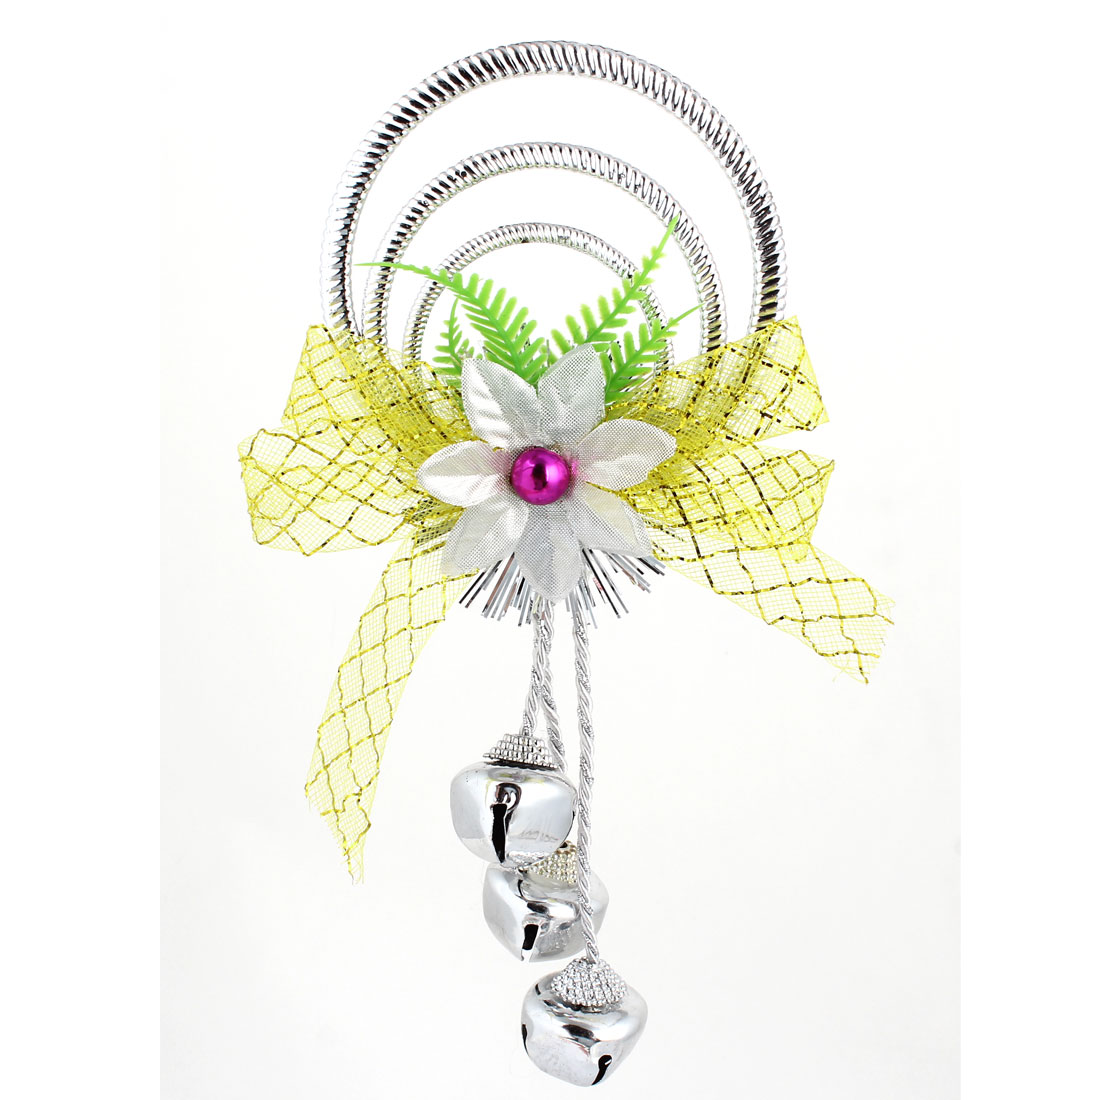 Bowknot Flowers Detail Plastic Rings Metal Bell Pendant Silver Tone for Christmas Xmas Tree Decor